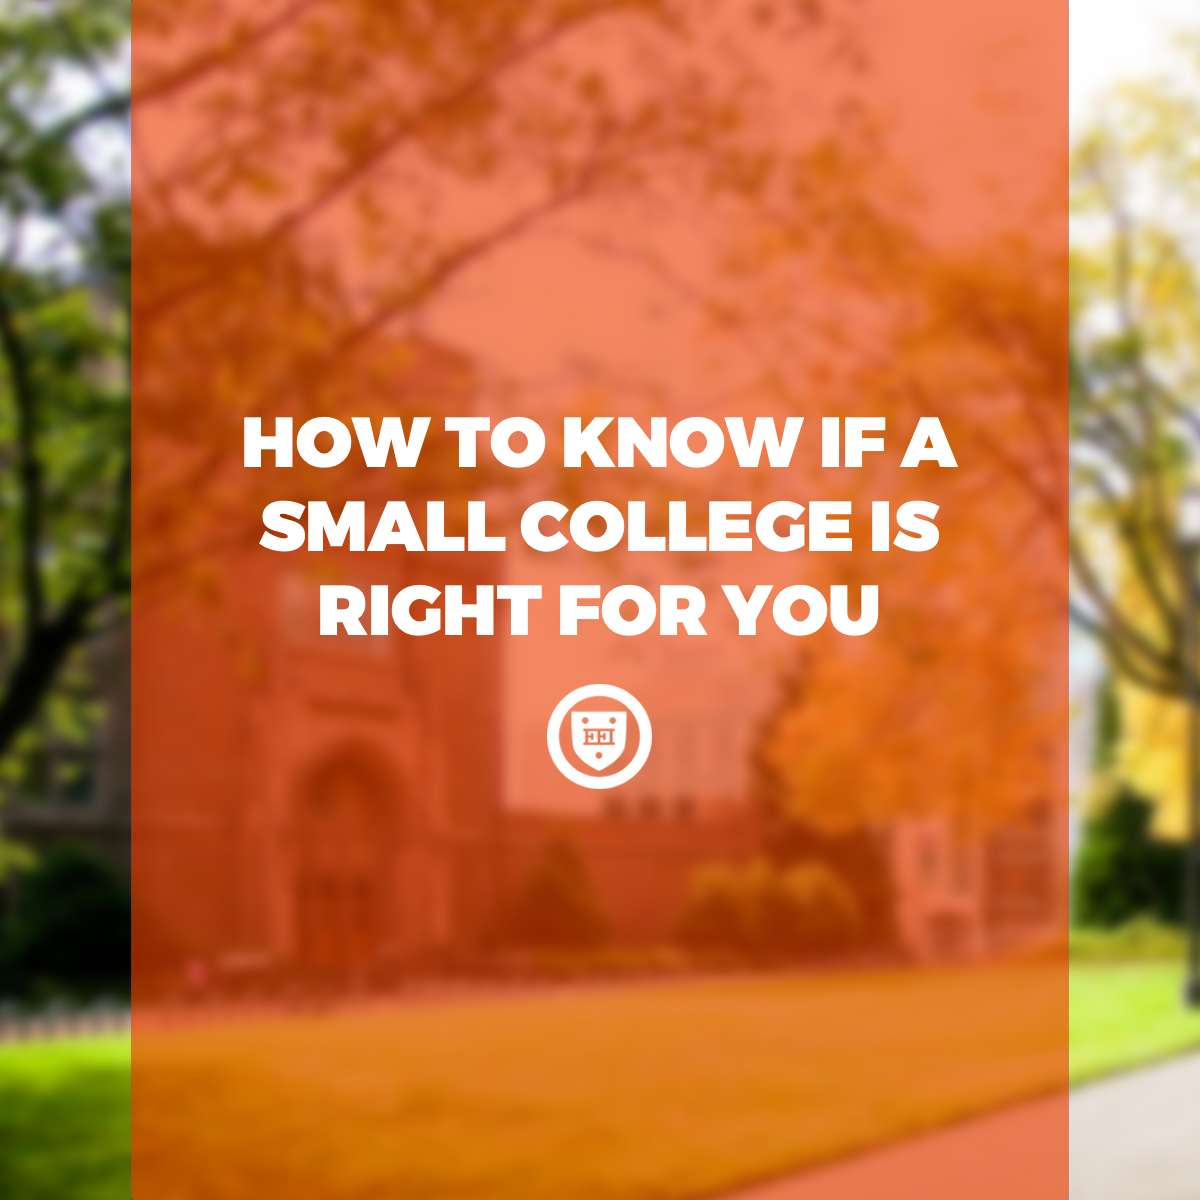 How to Know if a Small College is Right for You